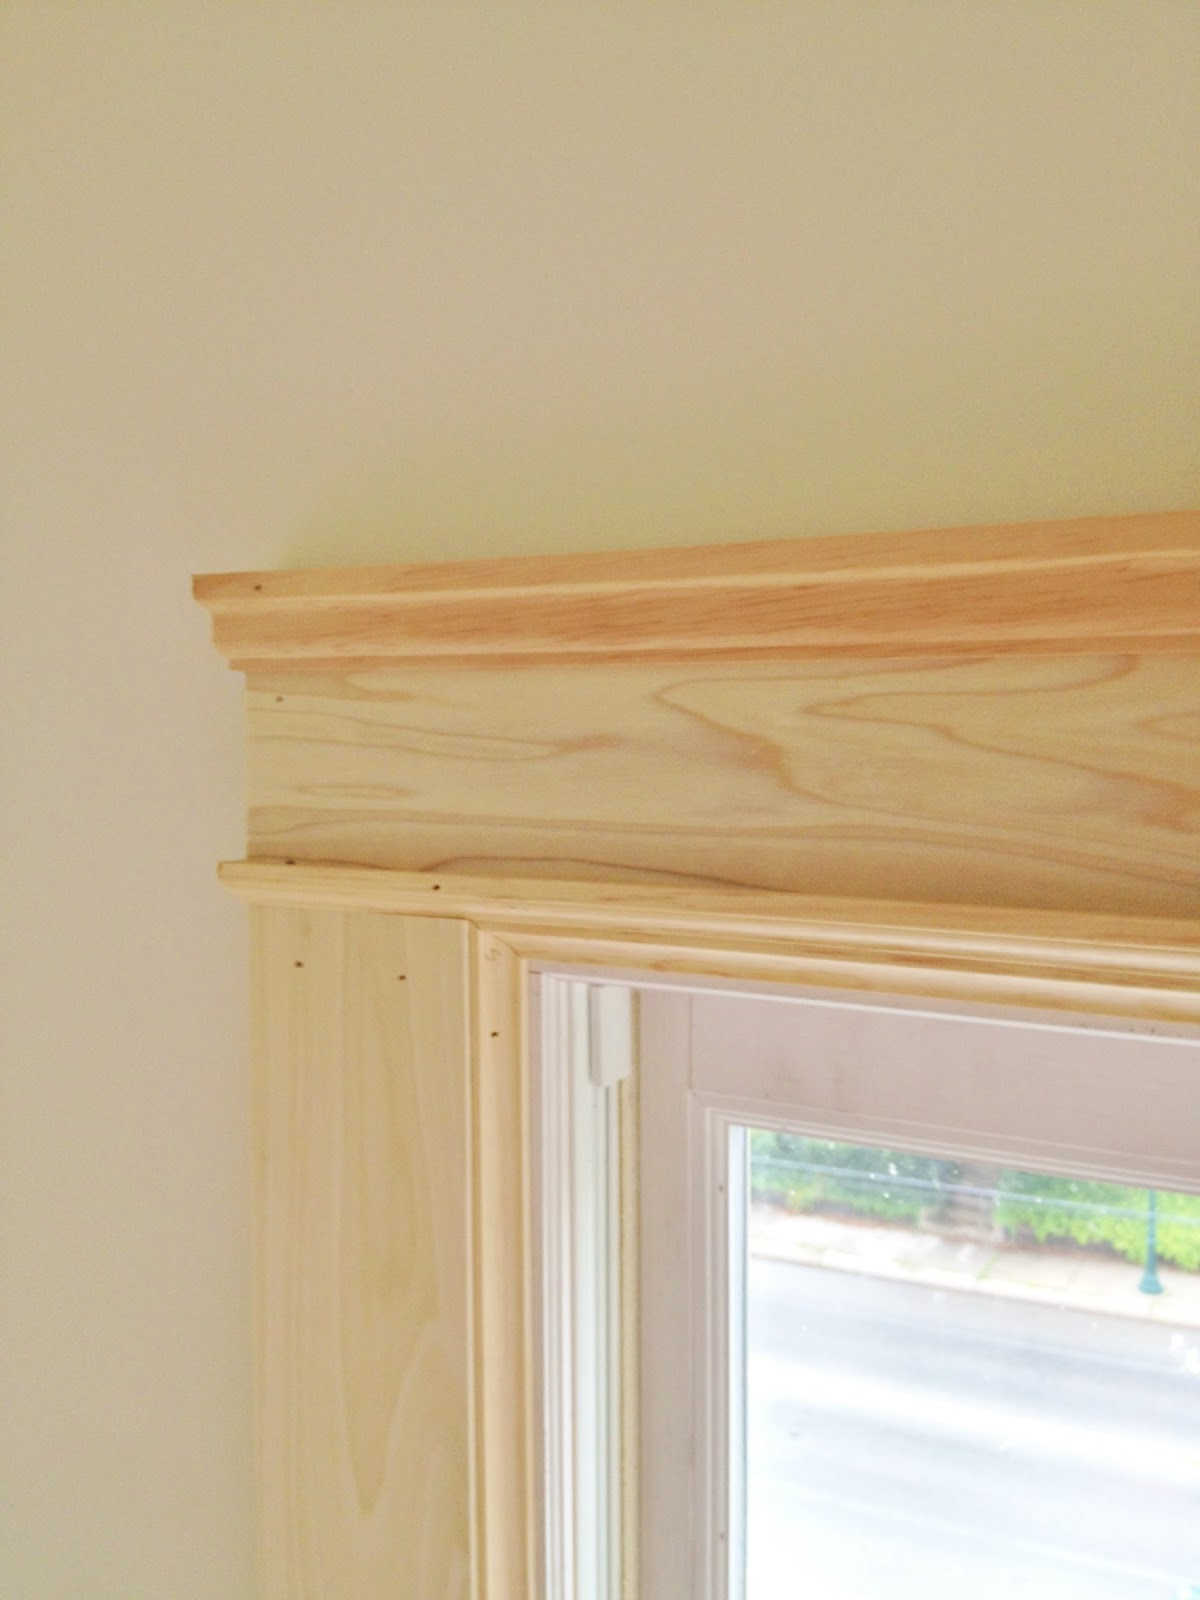 High Street Market: 3rd Floor: DIY Wainscoting and Trim (Update)